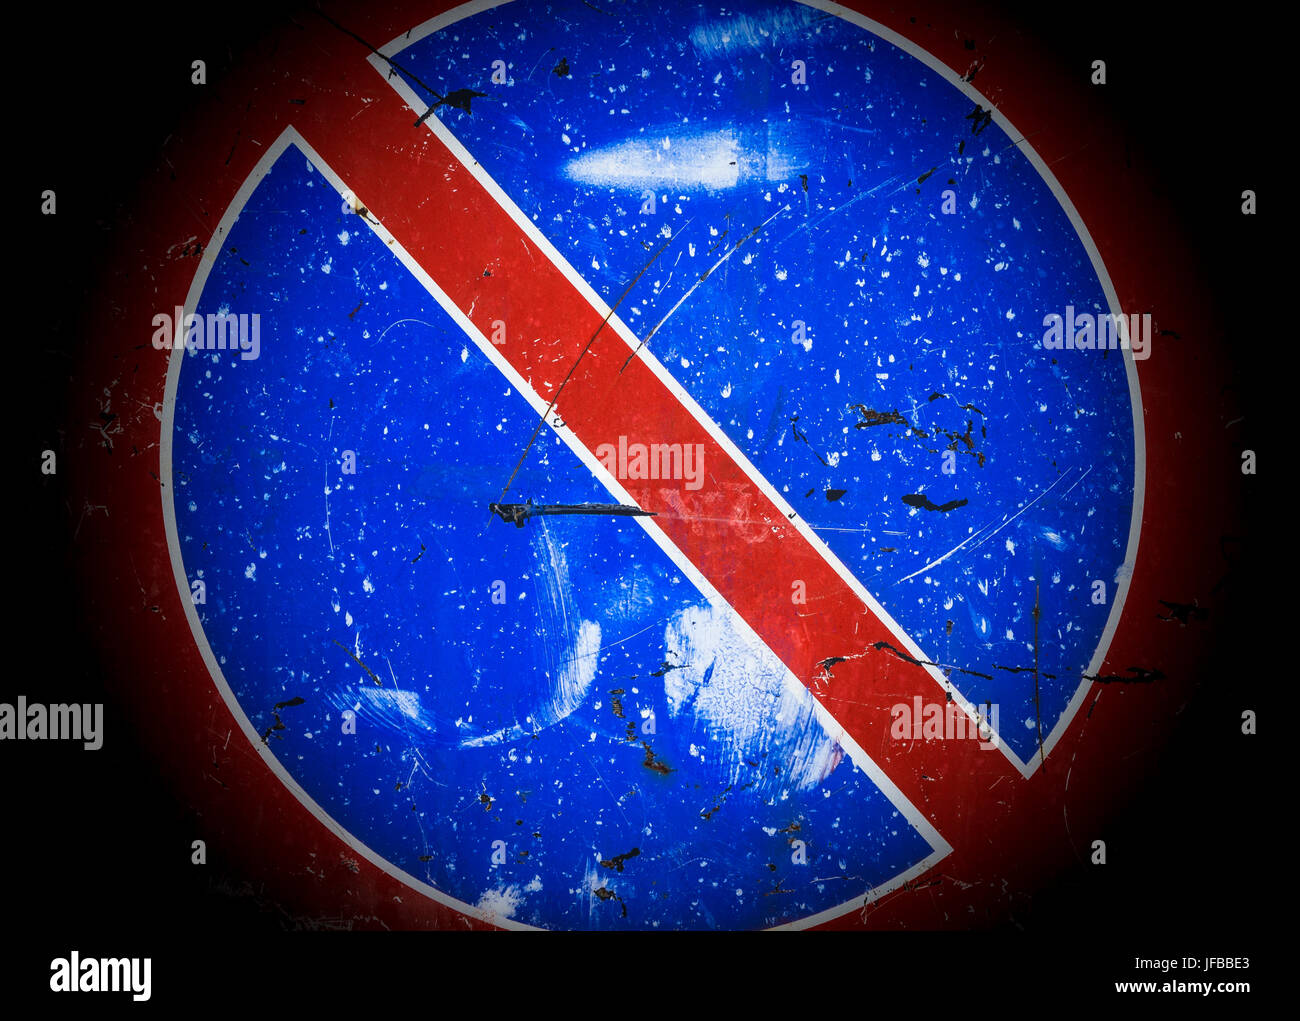 No parking traffic sign - Stock Image